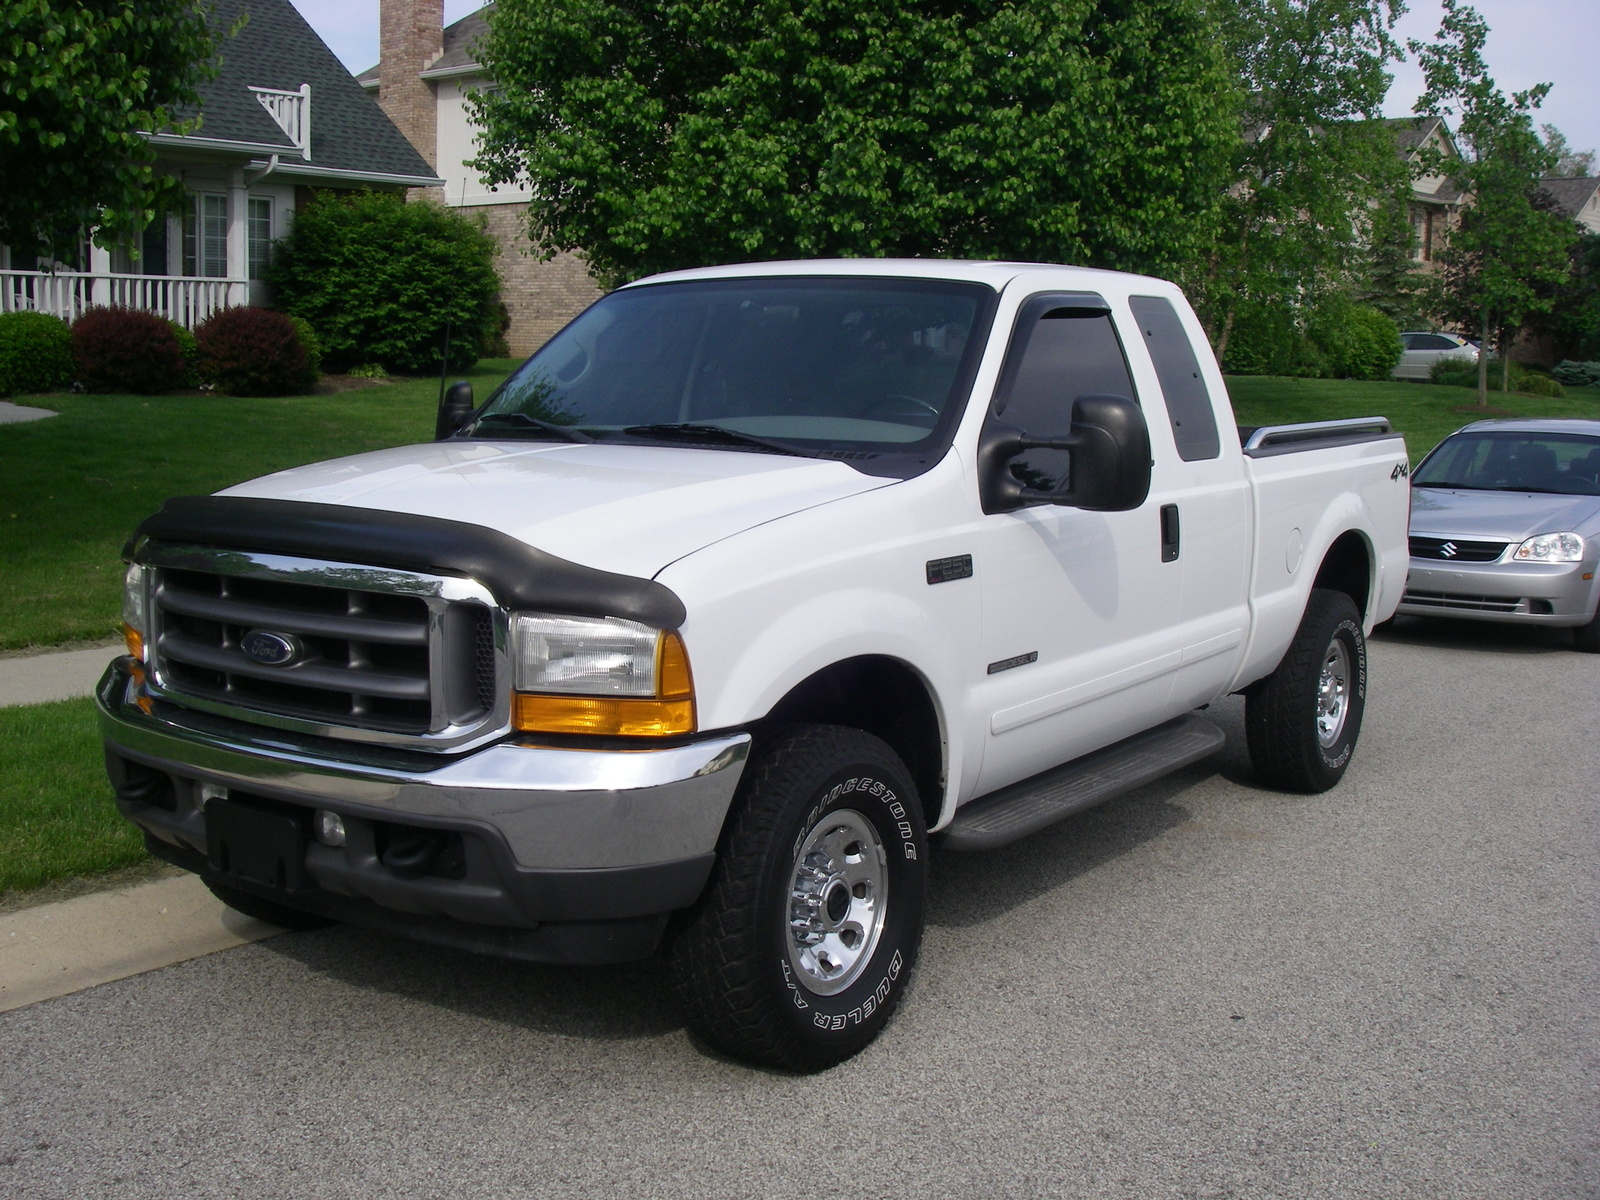 2005 ford f 250 super duty information and photos momentcar. Black Bedroom Furniture Sets. Home Design Ideas